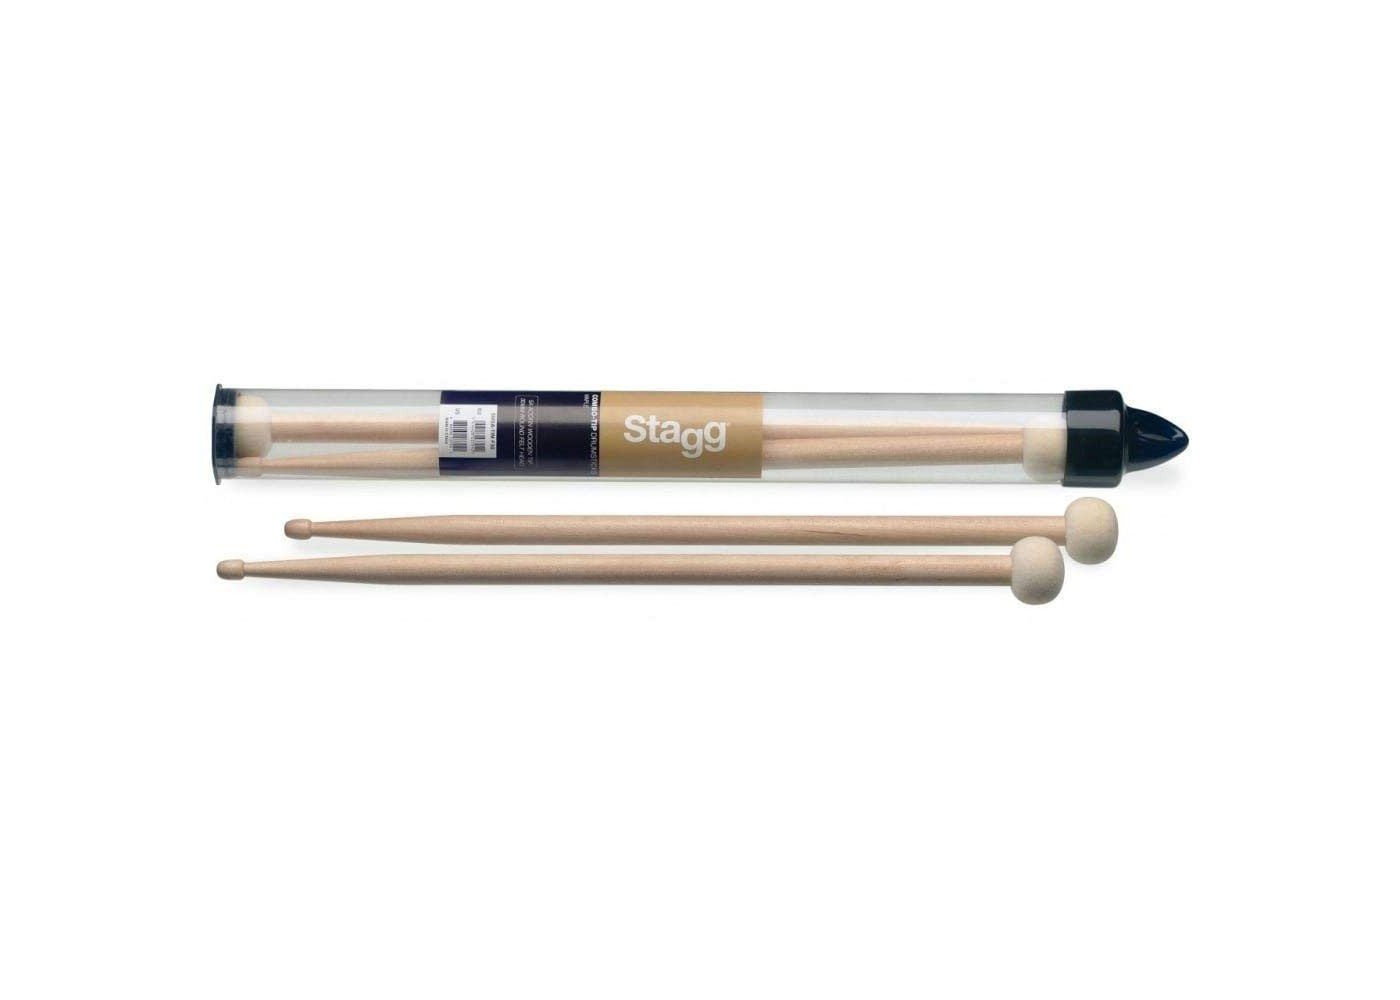 Stagg Sm5a Tim F30 Pair Of Maple Combo Tip Drumsticks With Wooden And Round Felt Head